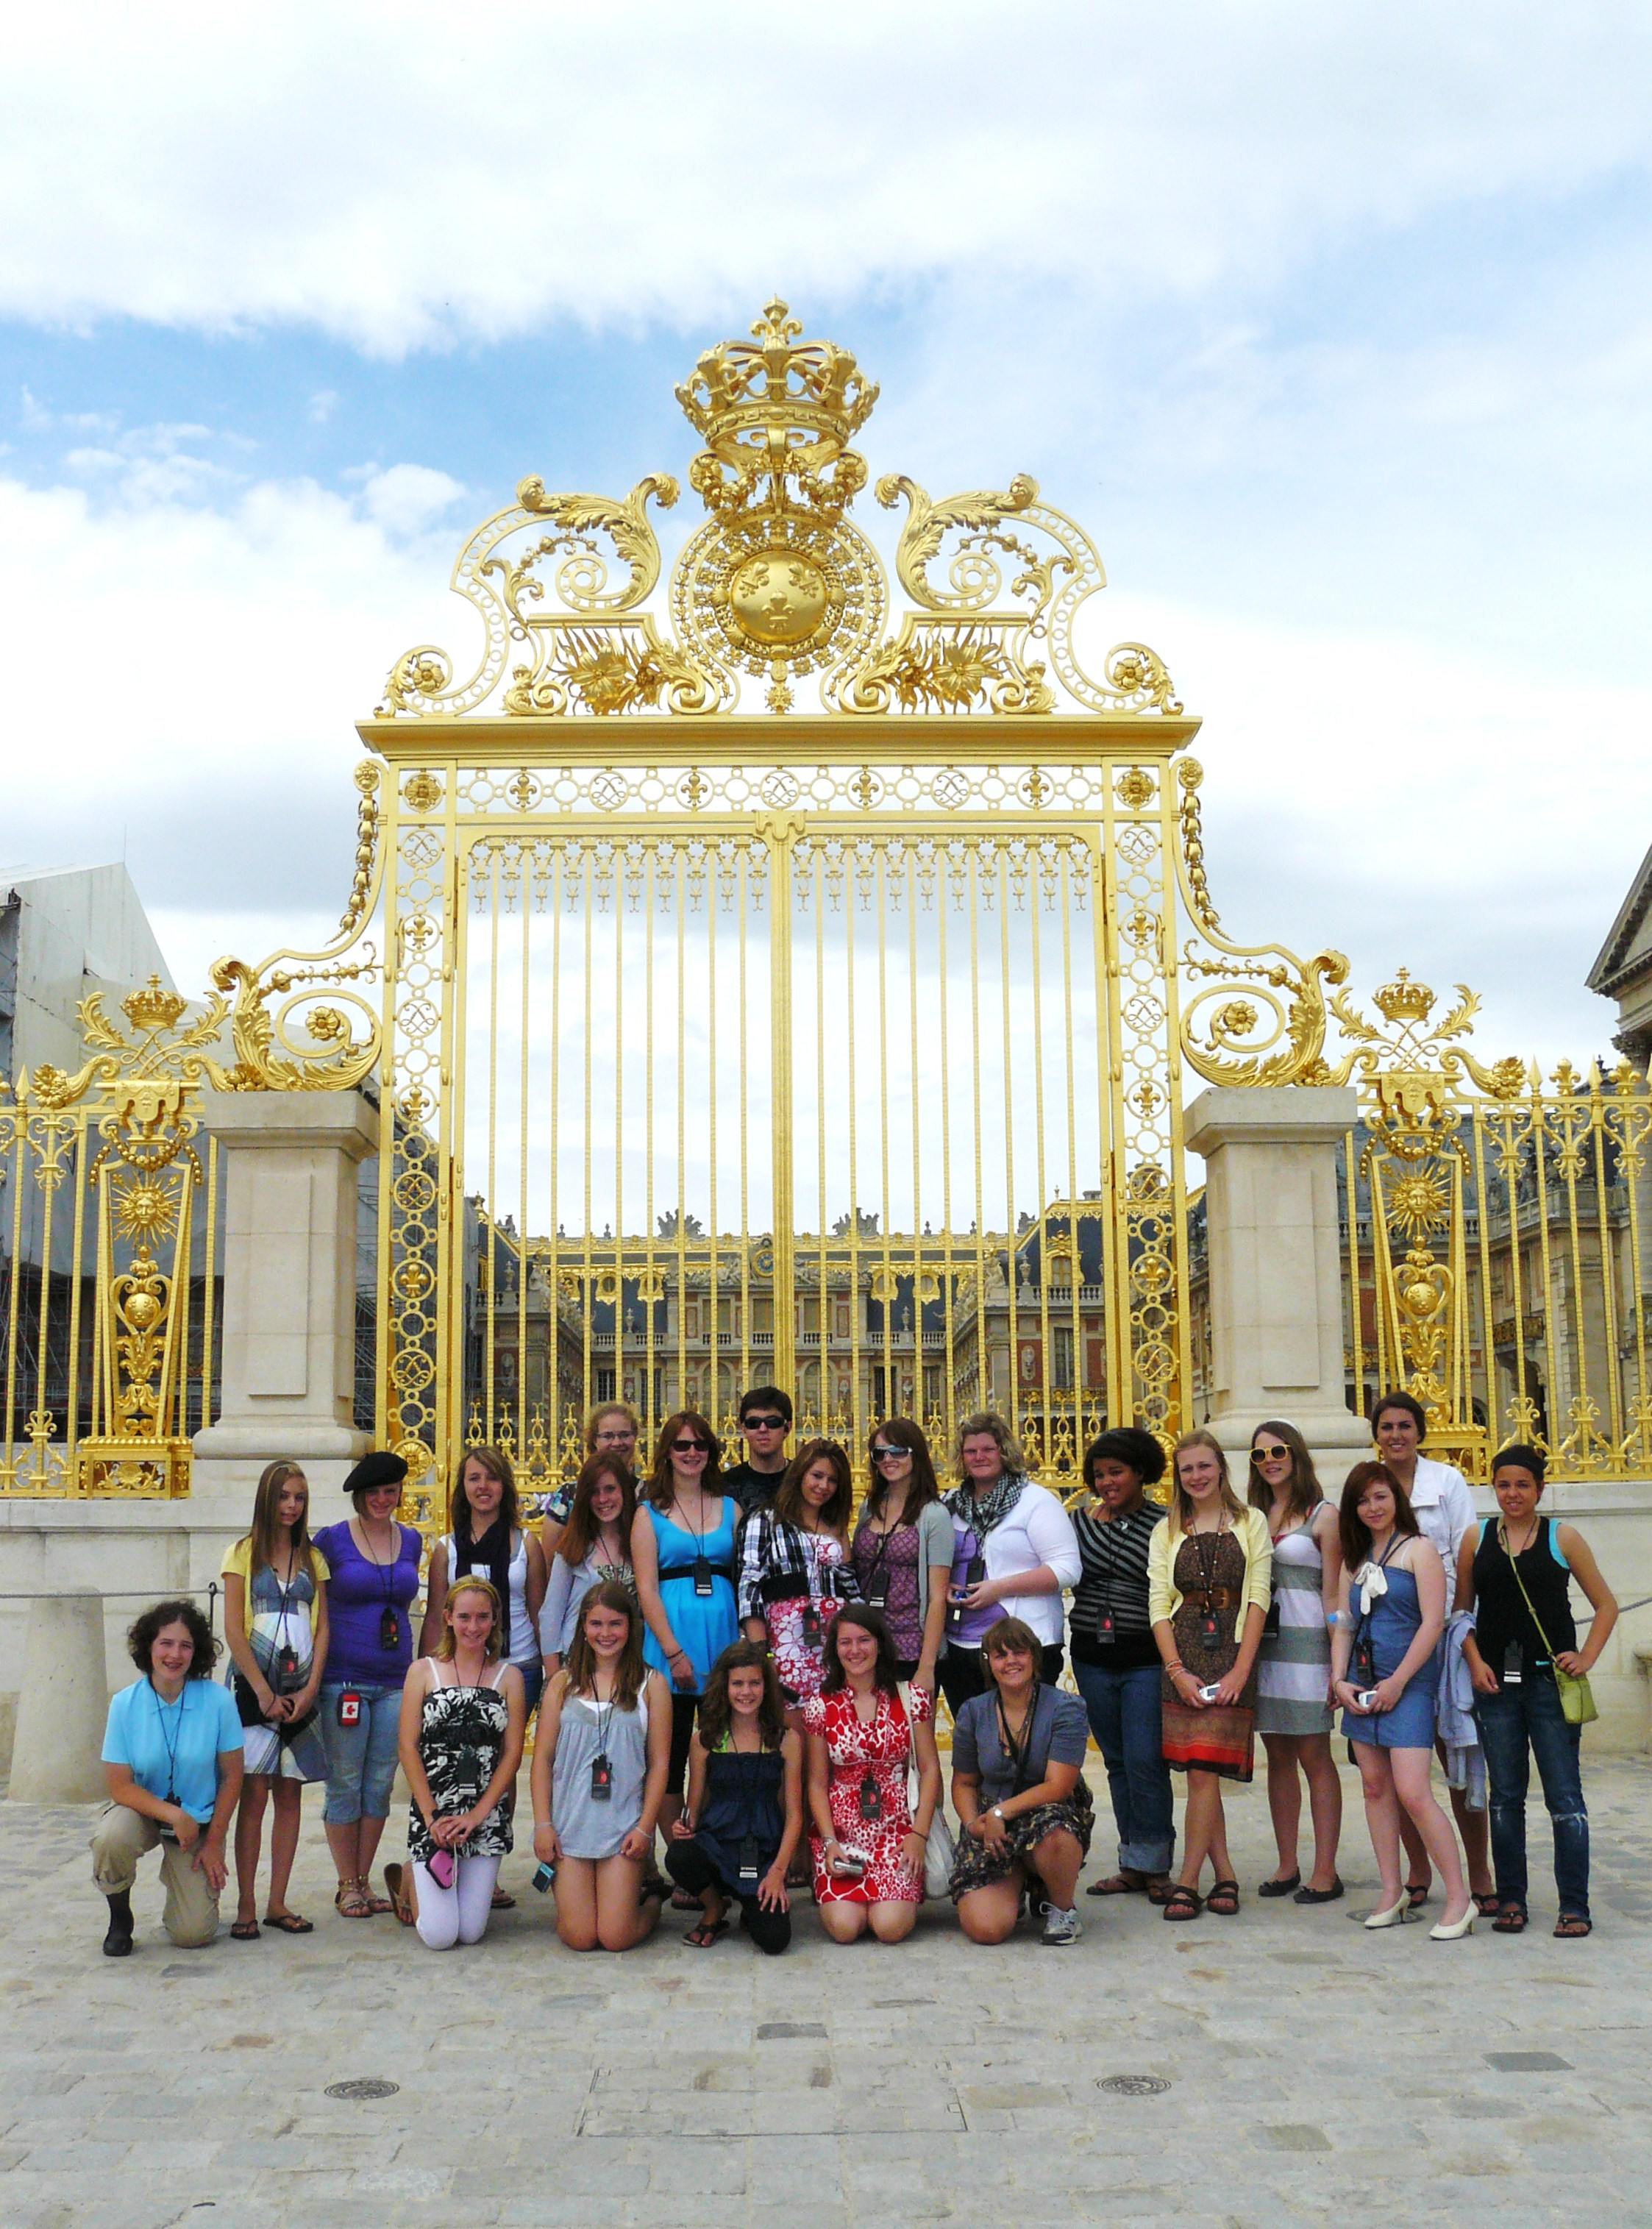 The choir in front of the golden gate at the Palace of Versailles.